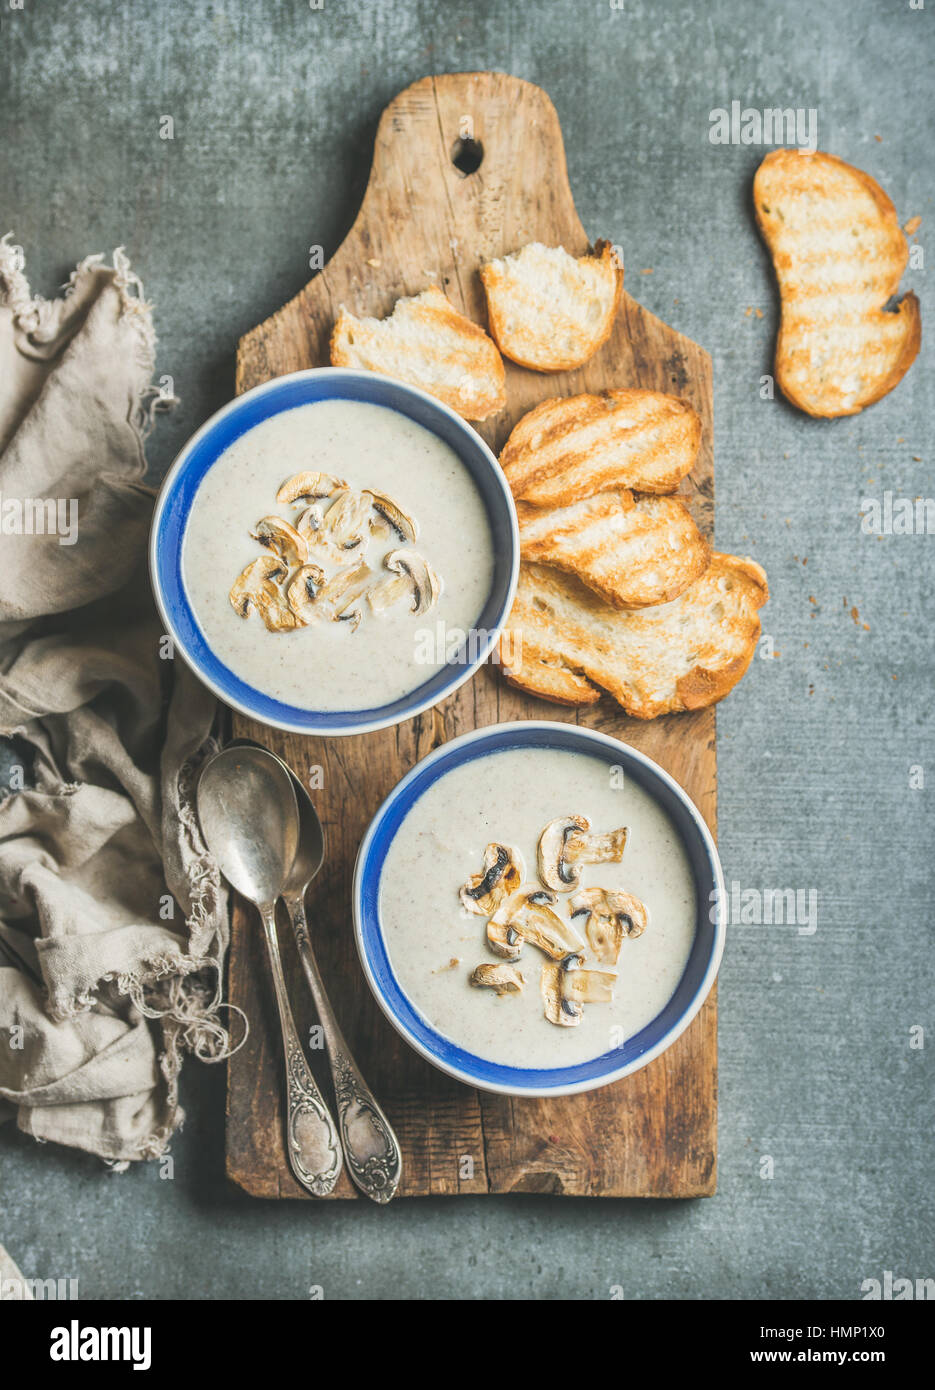 Creamy mushroom soup in bowls with toasted bread slices - Stock Image